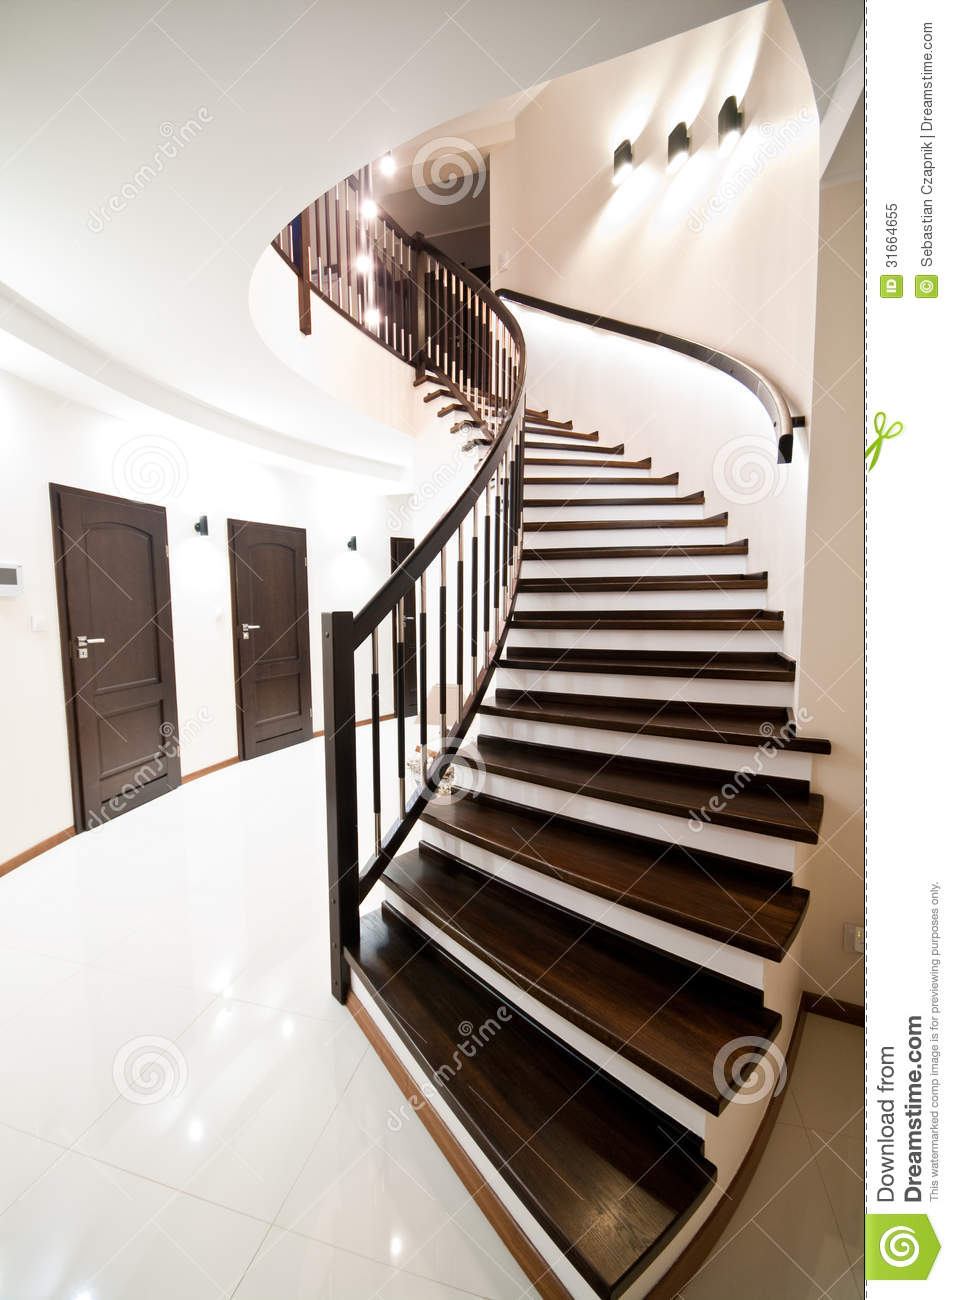 Spiral Stairs Royalty Free Stock Photo Image 31664655